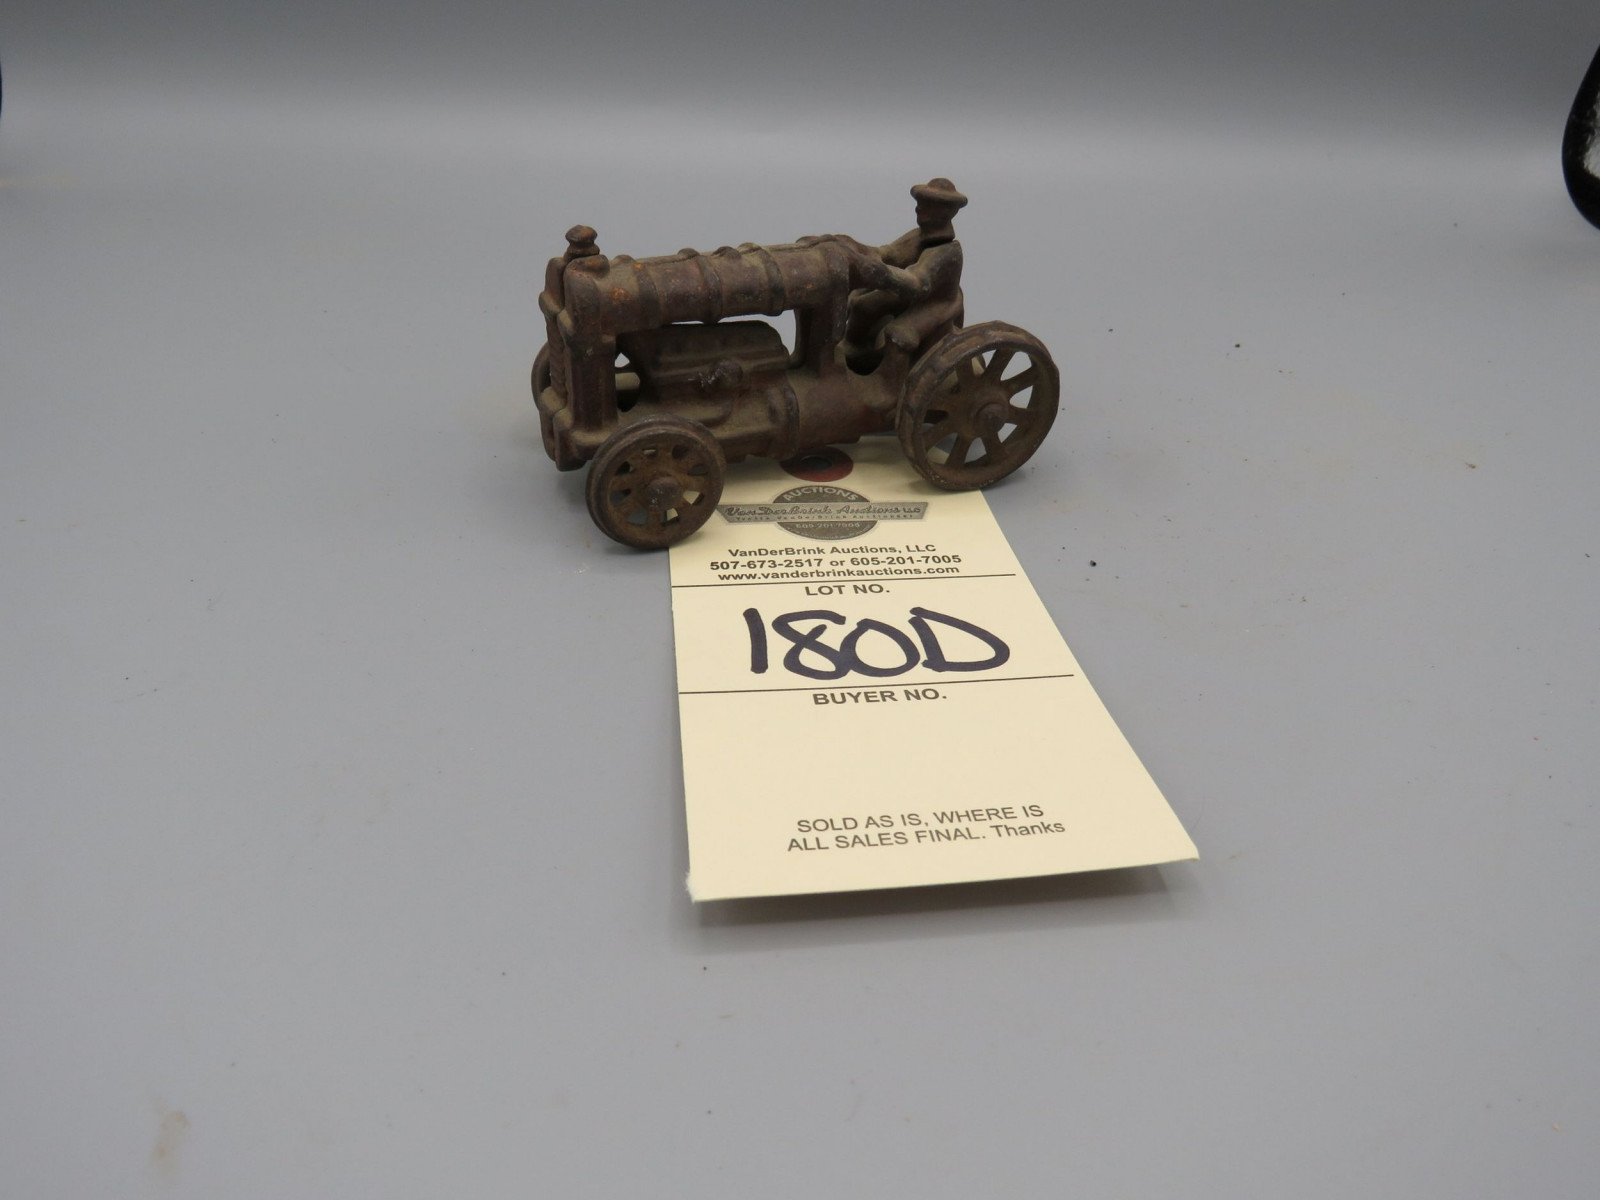 Arcade Cast Iron Fordson Tractor Approx. 4 inches inches - Image 1